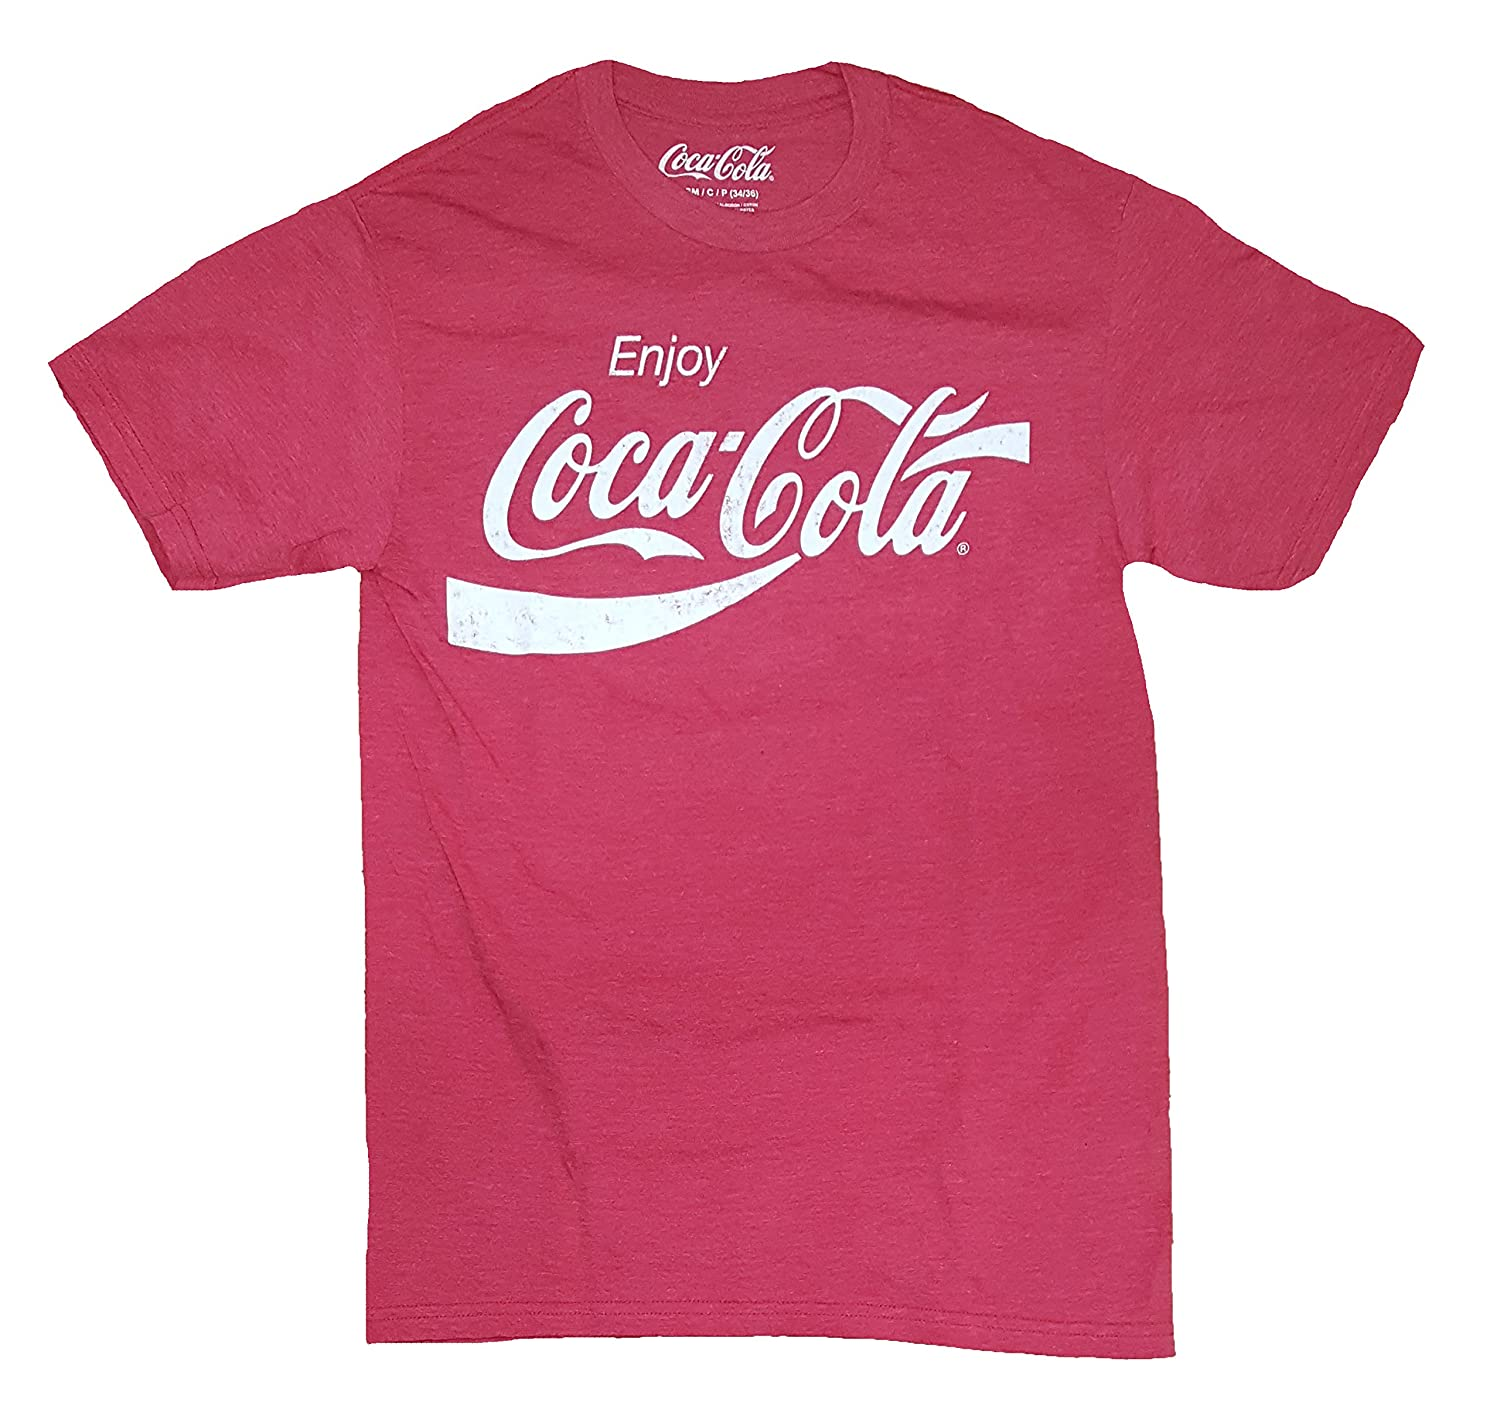 Coca-Cola Mens Enjoy Classic Logo Vintage Look T-shirt Mad Engine Inc. K0001MS3